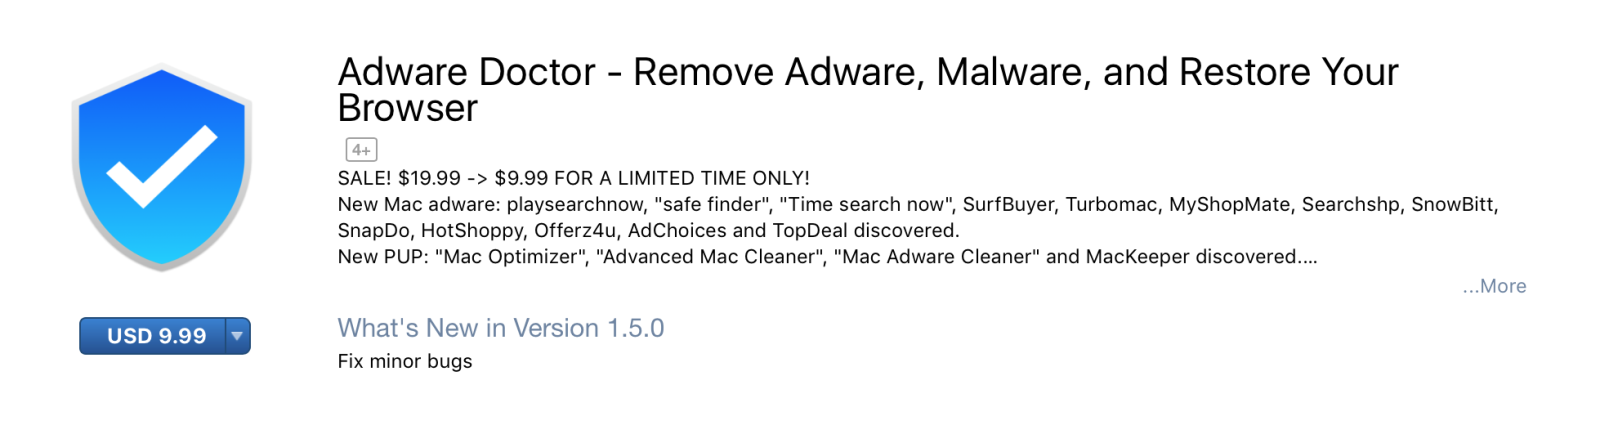 Ứng dụng Adware Doctor